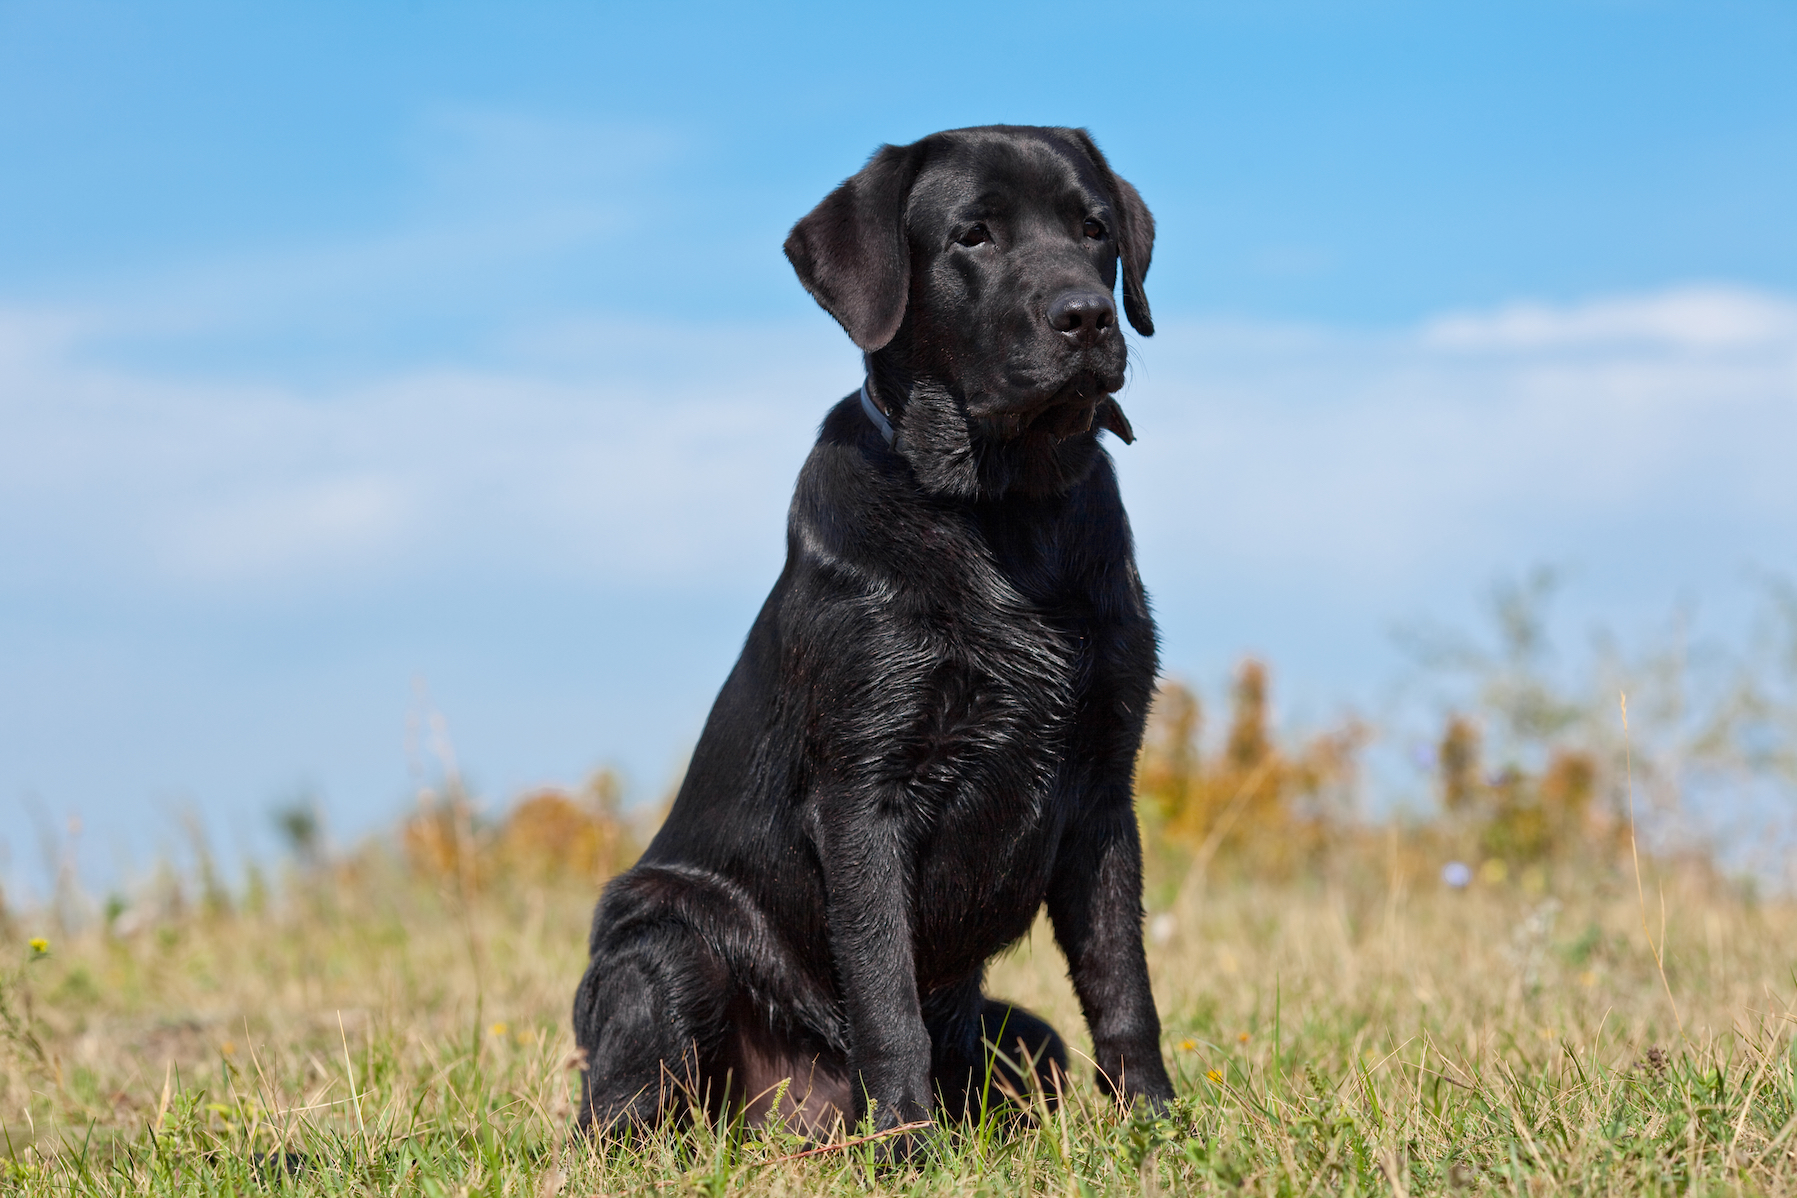 Researchers from the GFZ German Research Centre for Geosciences set out to see if animals, including domestic family dogs, can accurately predict earthquakes.